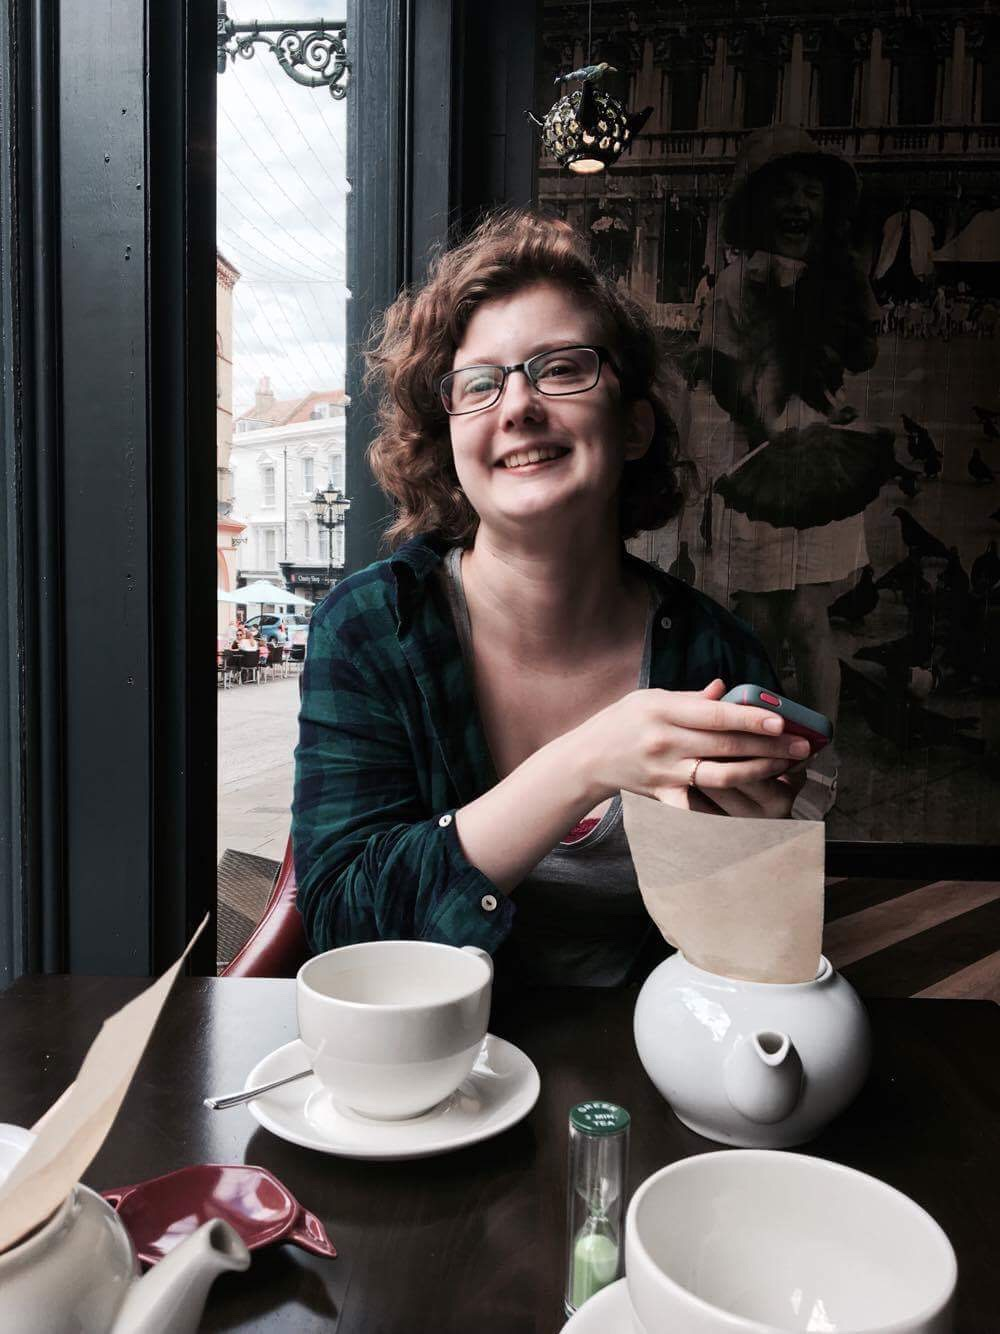 Image Description: A young woman with curly brown hair and glasses sits in a restaurant with teacups in front of her, smiling and holding her phone.